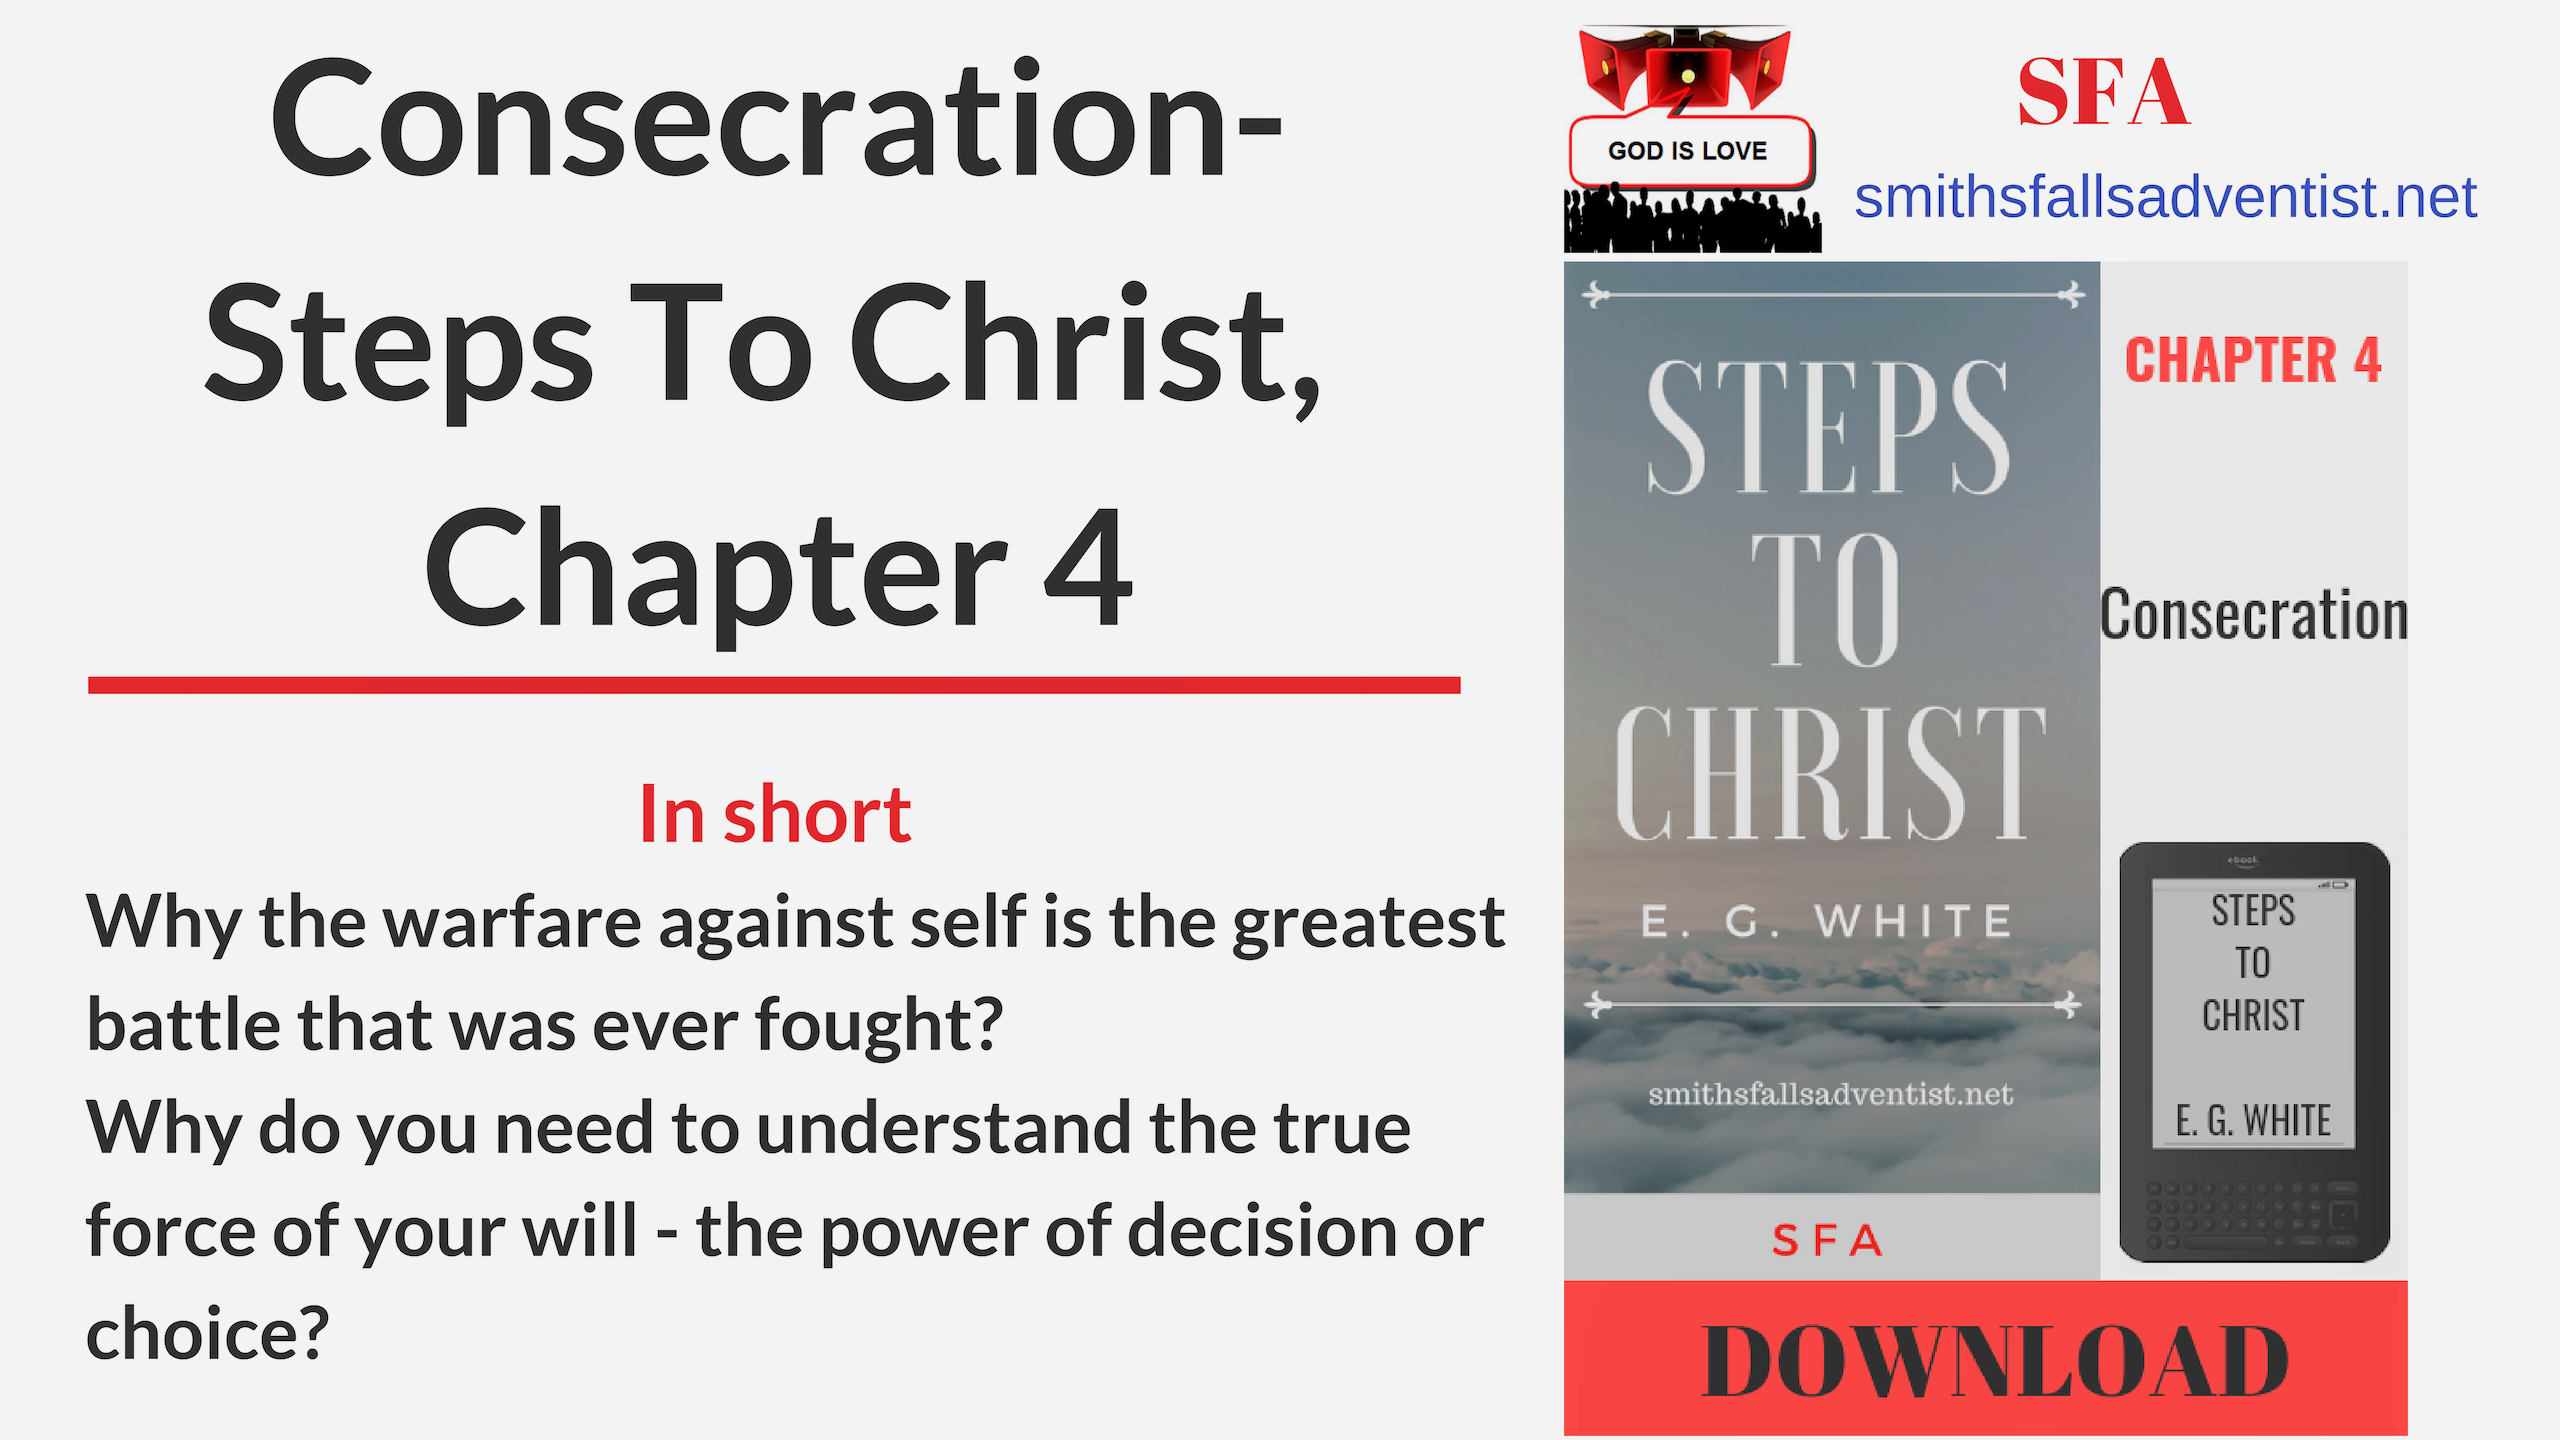 Consecration-Steps-To-Christ-Chapter-4-text-logo